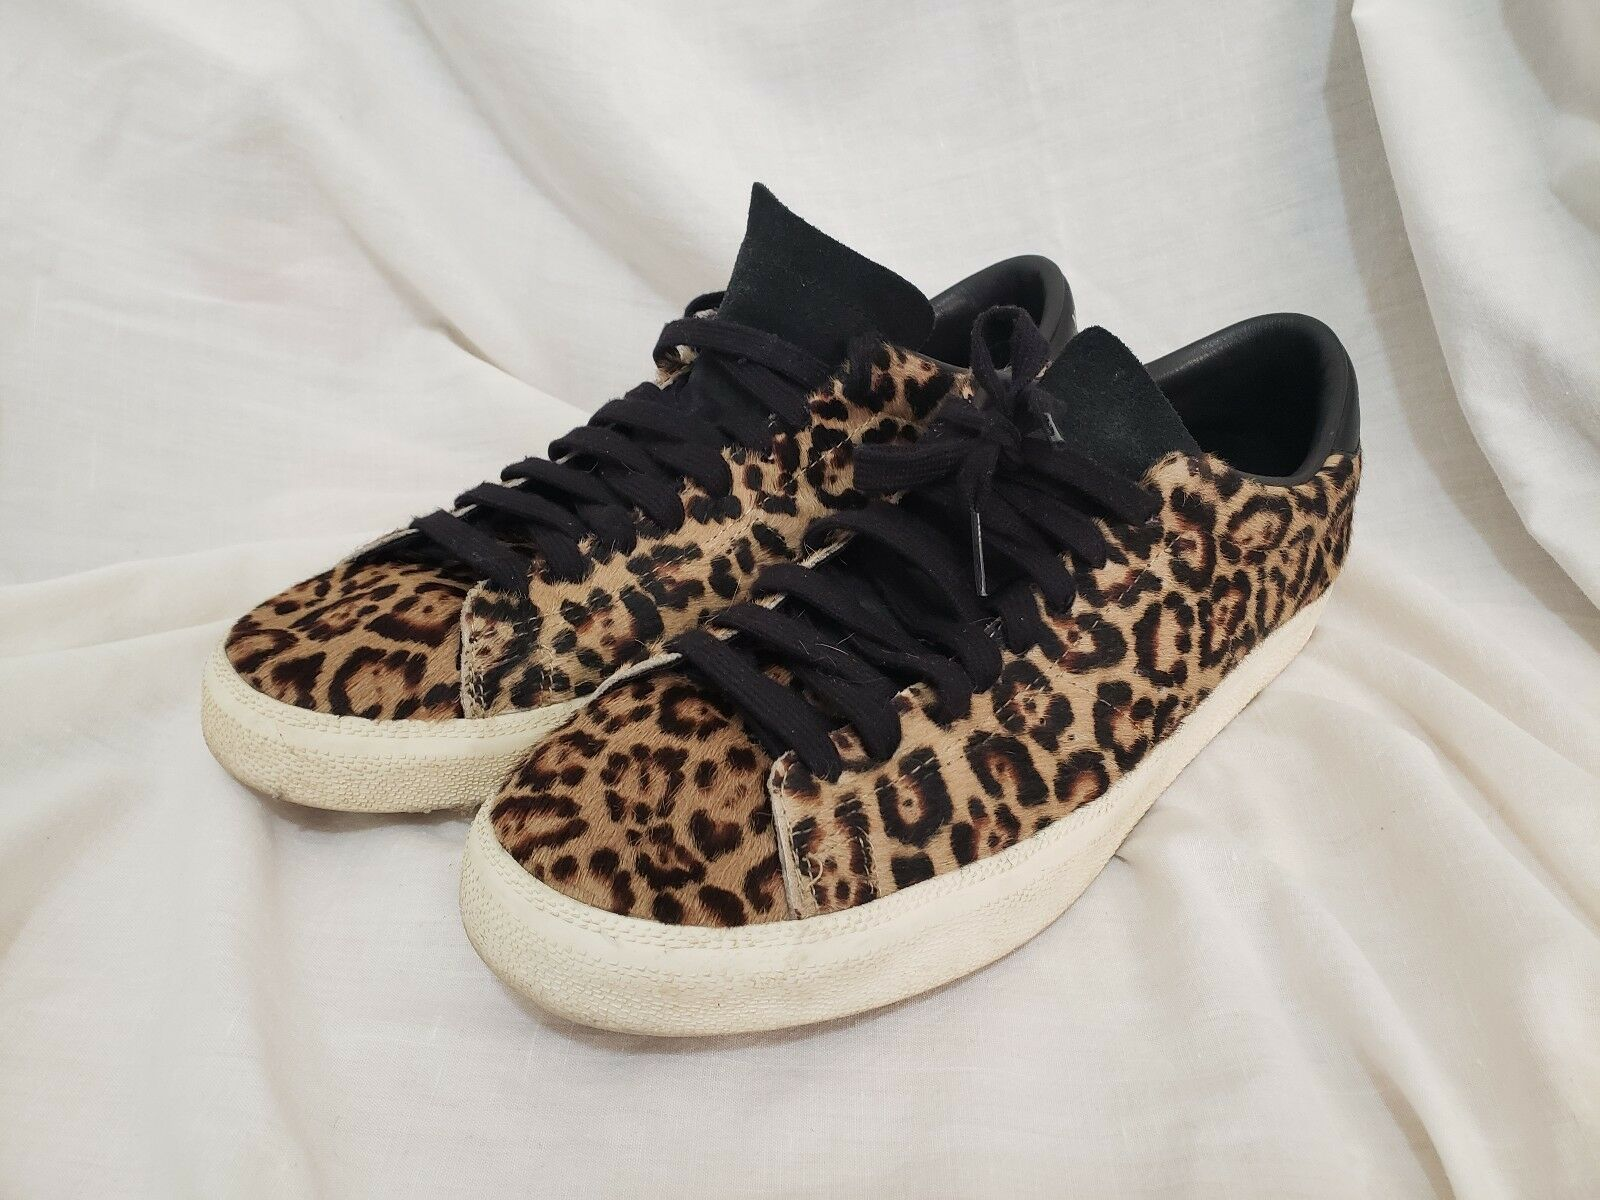 Adidas Match Play Low Top Leopard Suede Walking shoes 11